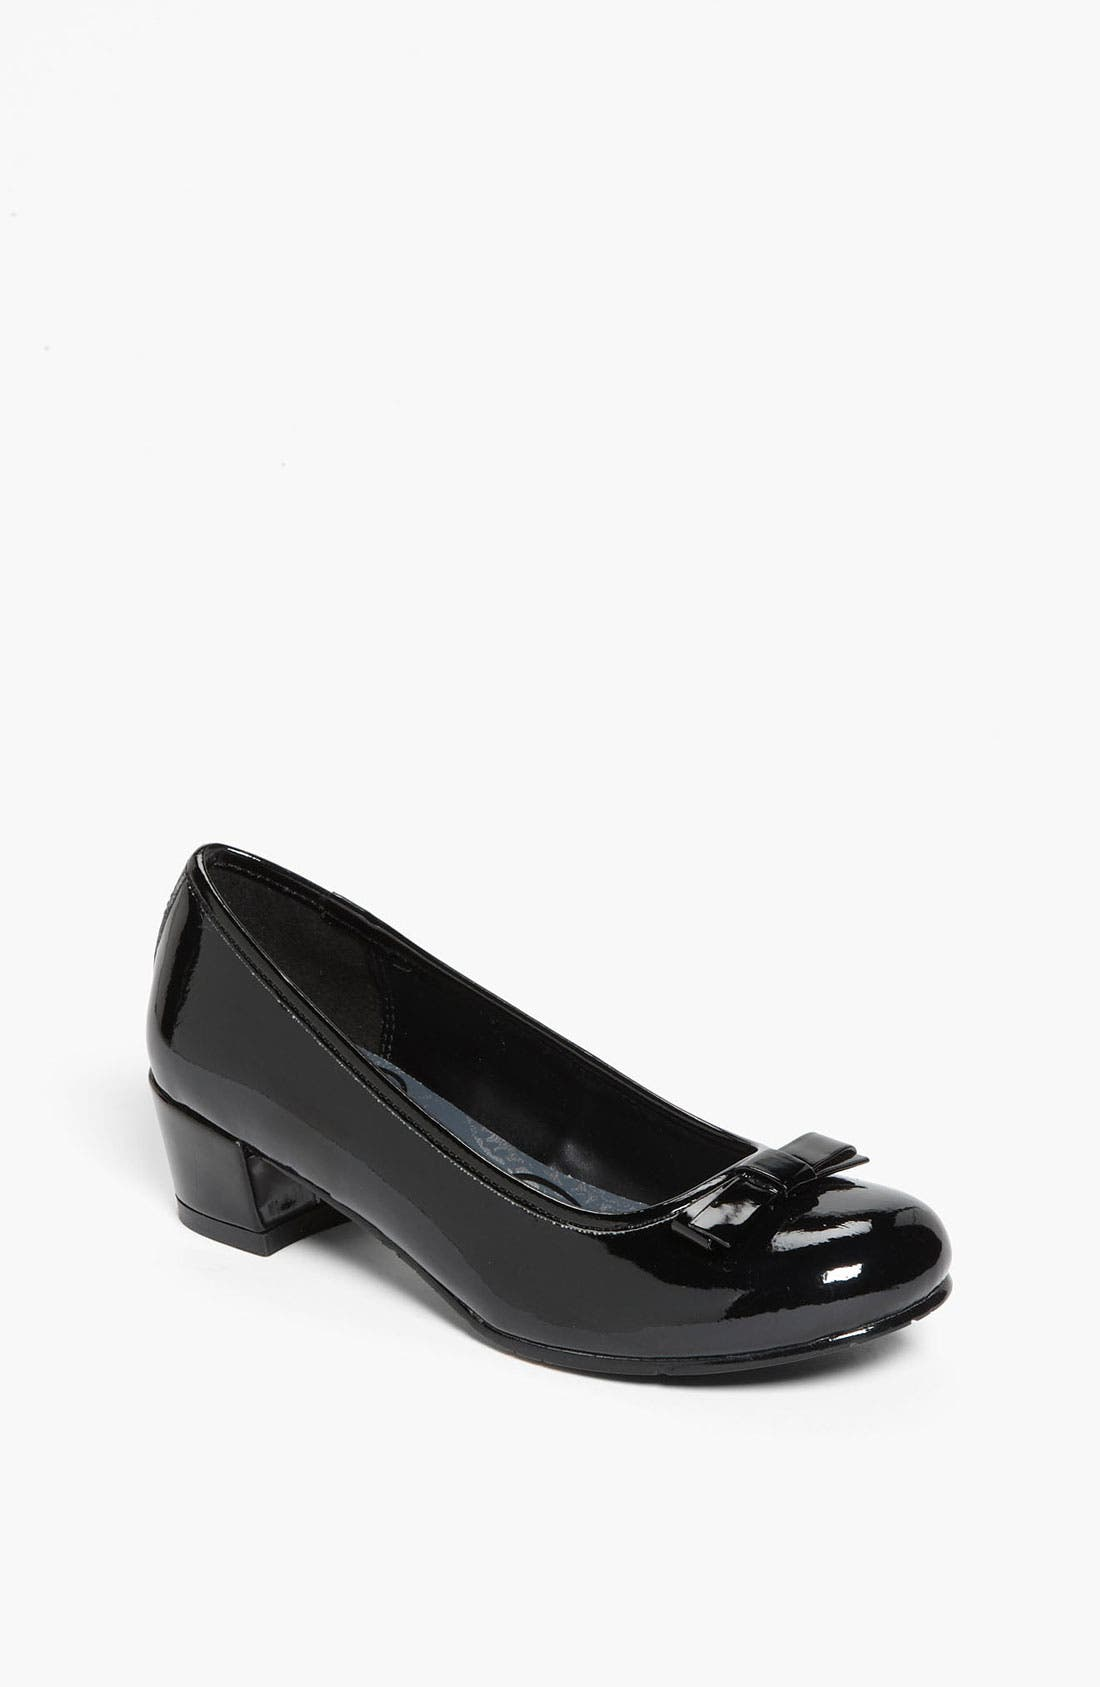 Alternate Image 1 Selected - Jessica Simpson Patent Pump (Little Kid & Big Kid)